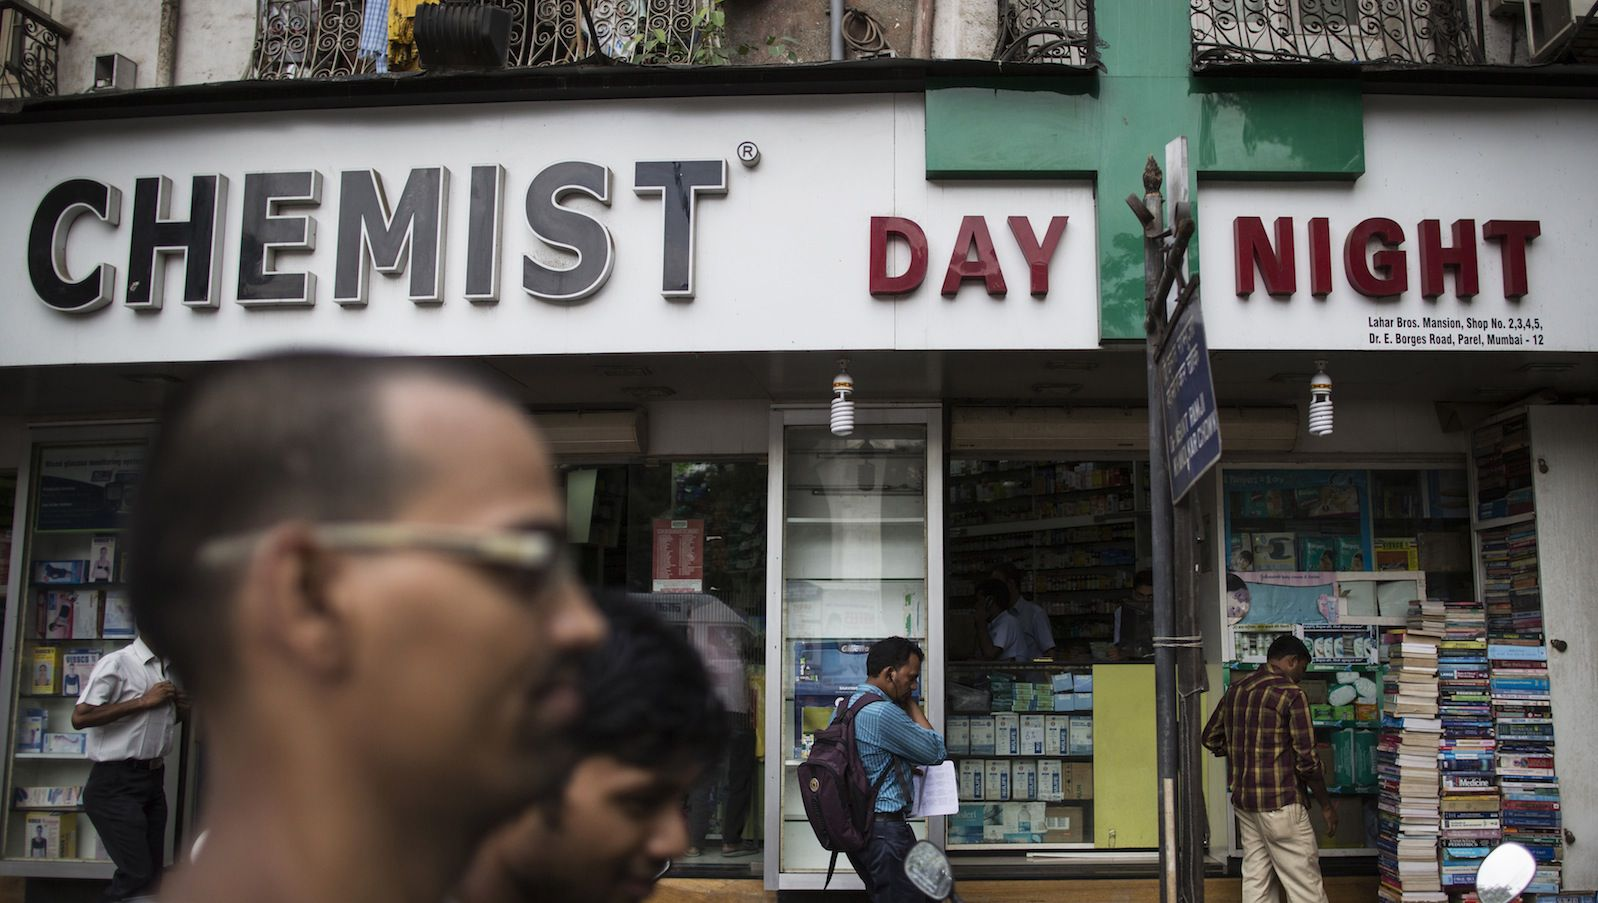 People walk past a chemist shop at a market in Mumbai June 24, 2014. India's health ministry has formed a committee that will meet for the first time on Tuesday to consider raising the number of drugs deemed essential and subject to price caps, people directly involved in the process said. A panel formed by India's health ministry is meeting for the first time on Tuesday to consider adding more drugs to the list of essential medicines, all of which would then come under price caps, one of the people said. The move would make the drugs more affordable in a country where 70 percent of the people live on less than $2 a day. REUTERS/Danish Siddiqui (INDIA - Tags: HEALTH BUSINESS) - RTR3VFYH